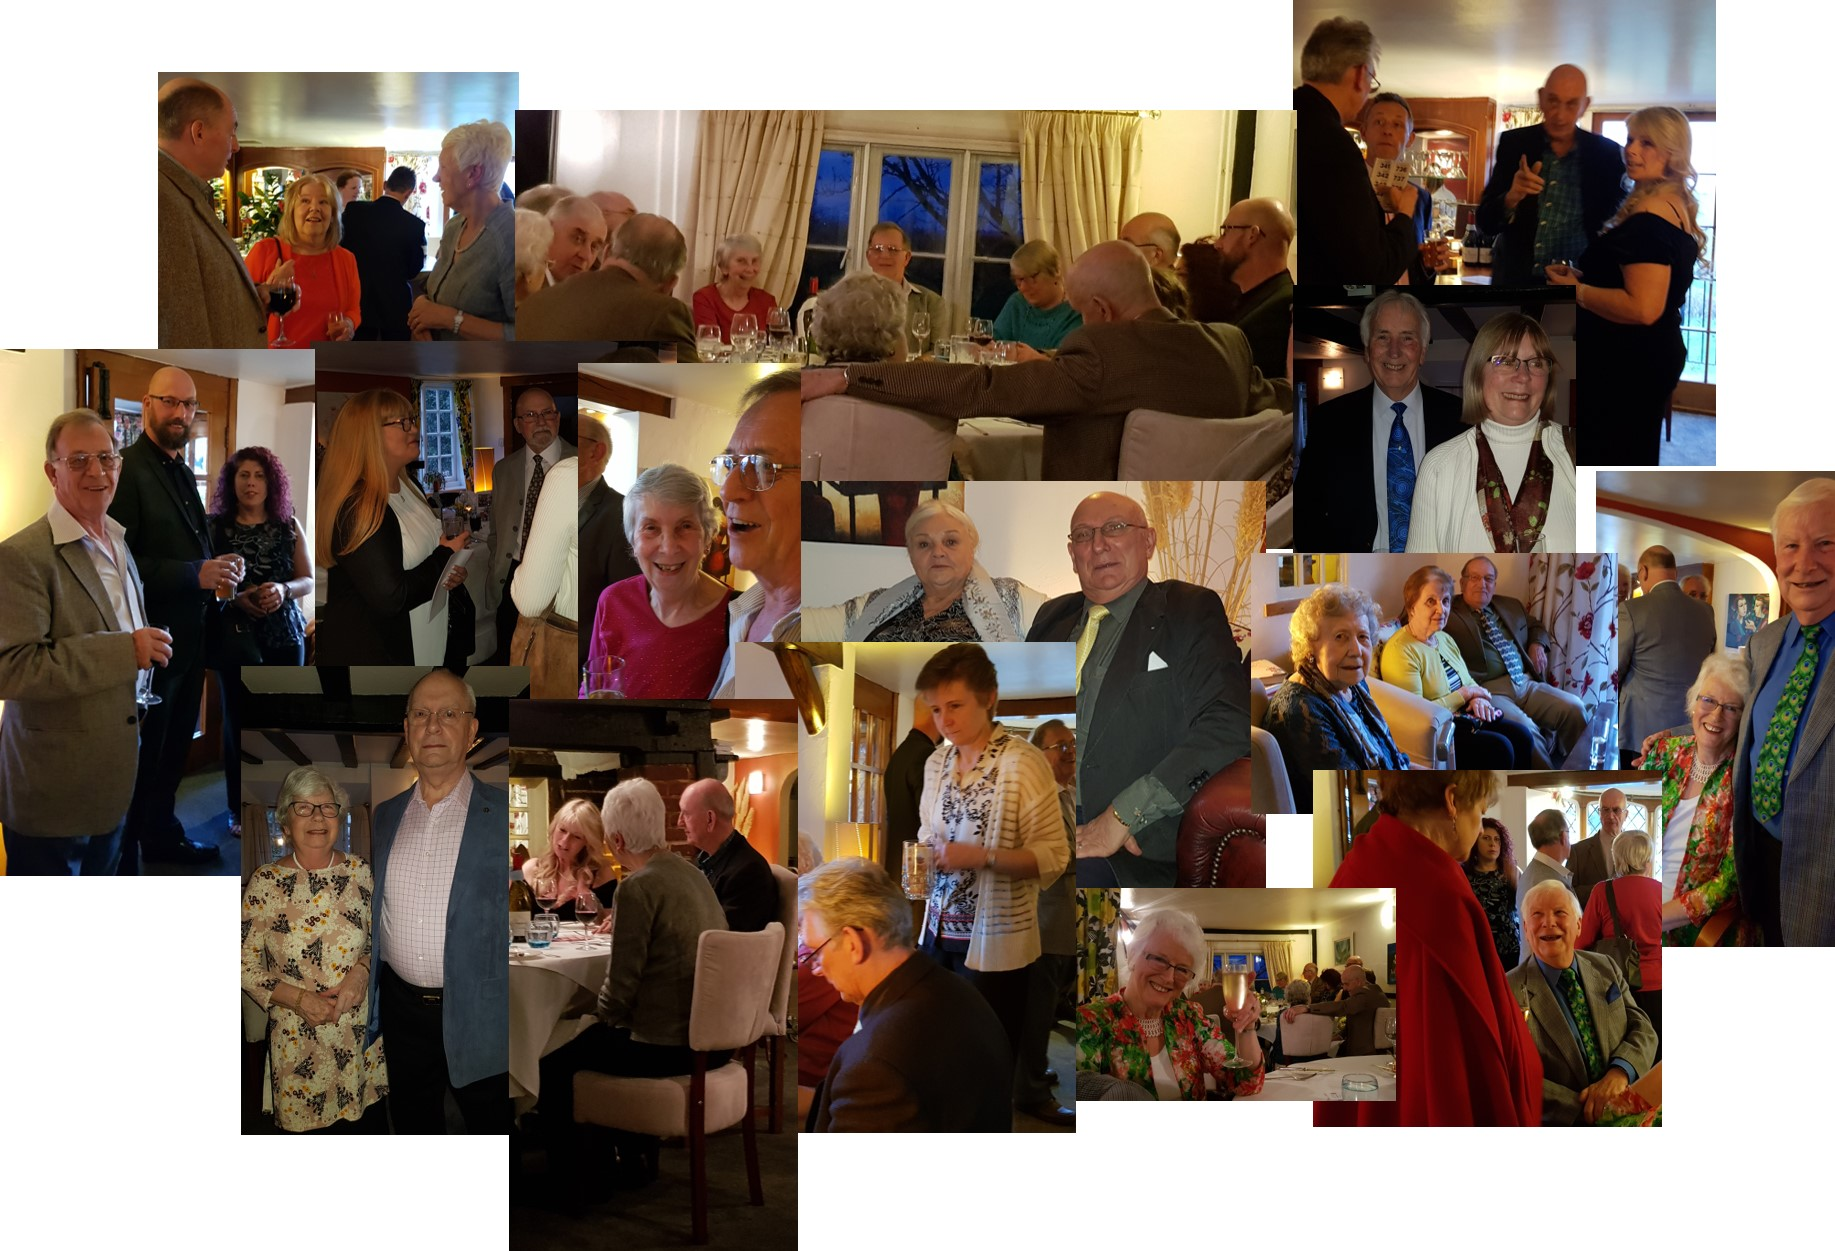 Charity dinner held at the Sundial Restaurant in Herstmonceux to raise money for charity